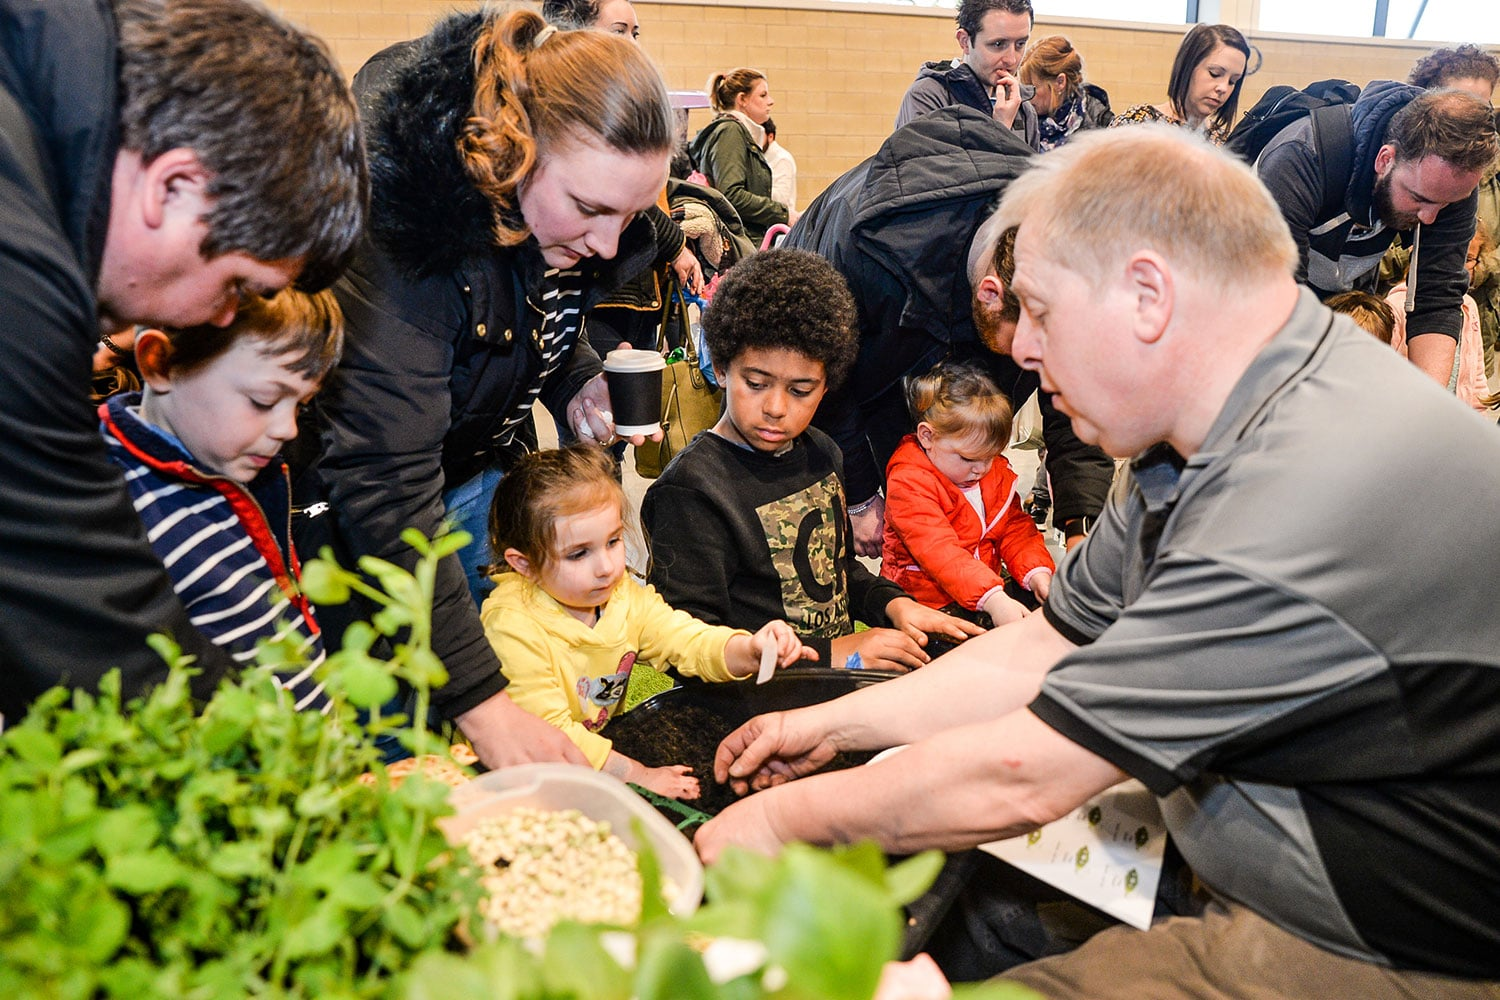 Children planting seeds at Springtime Live